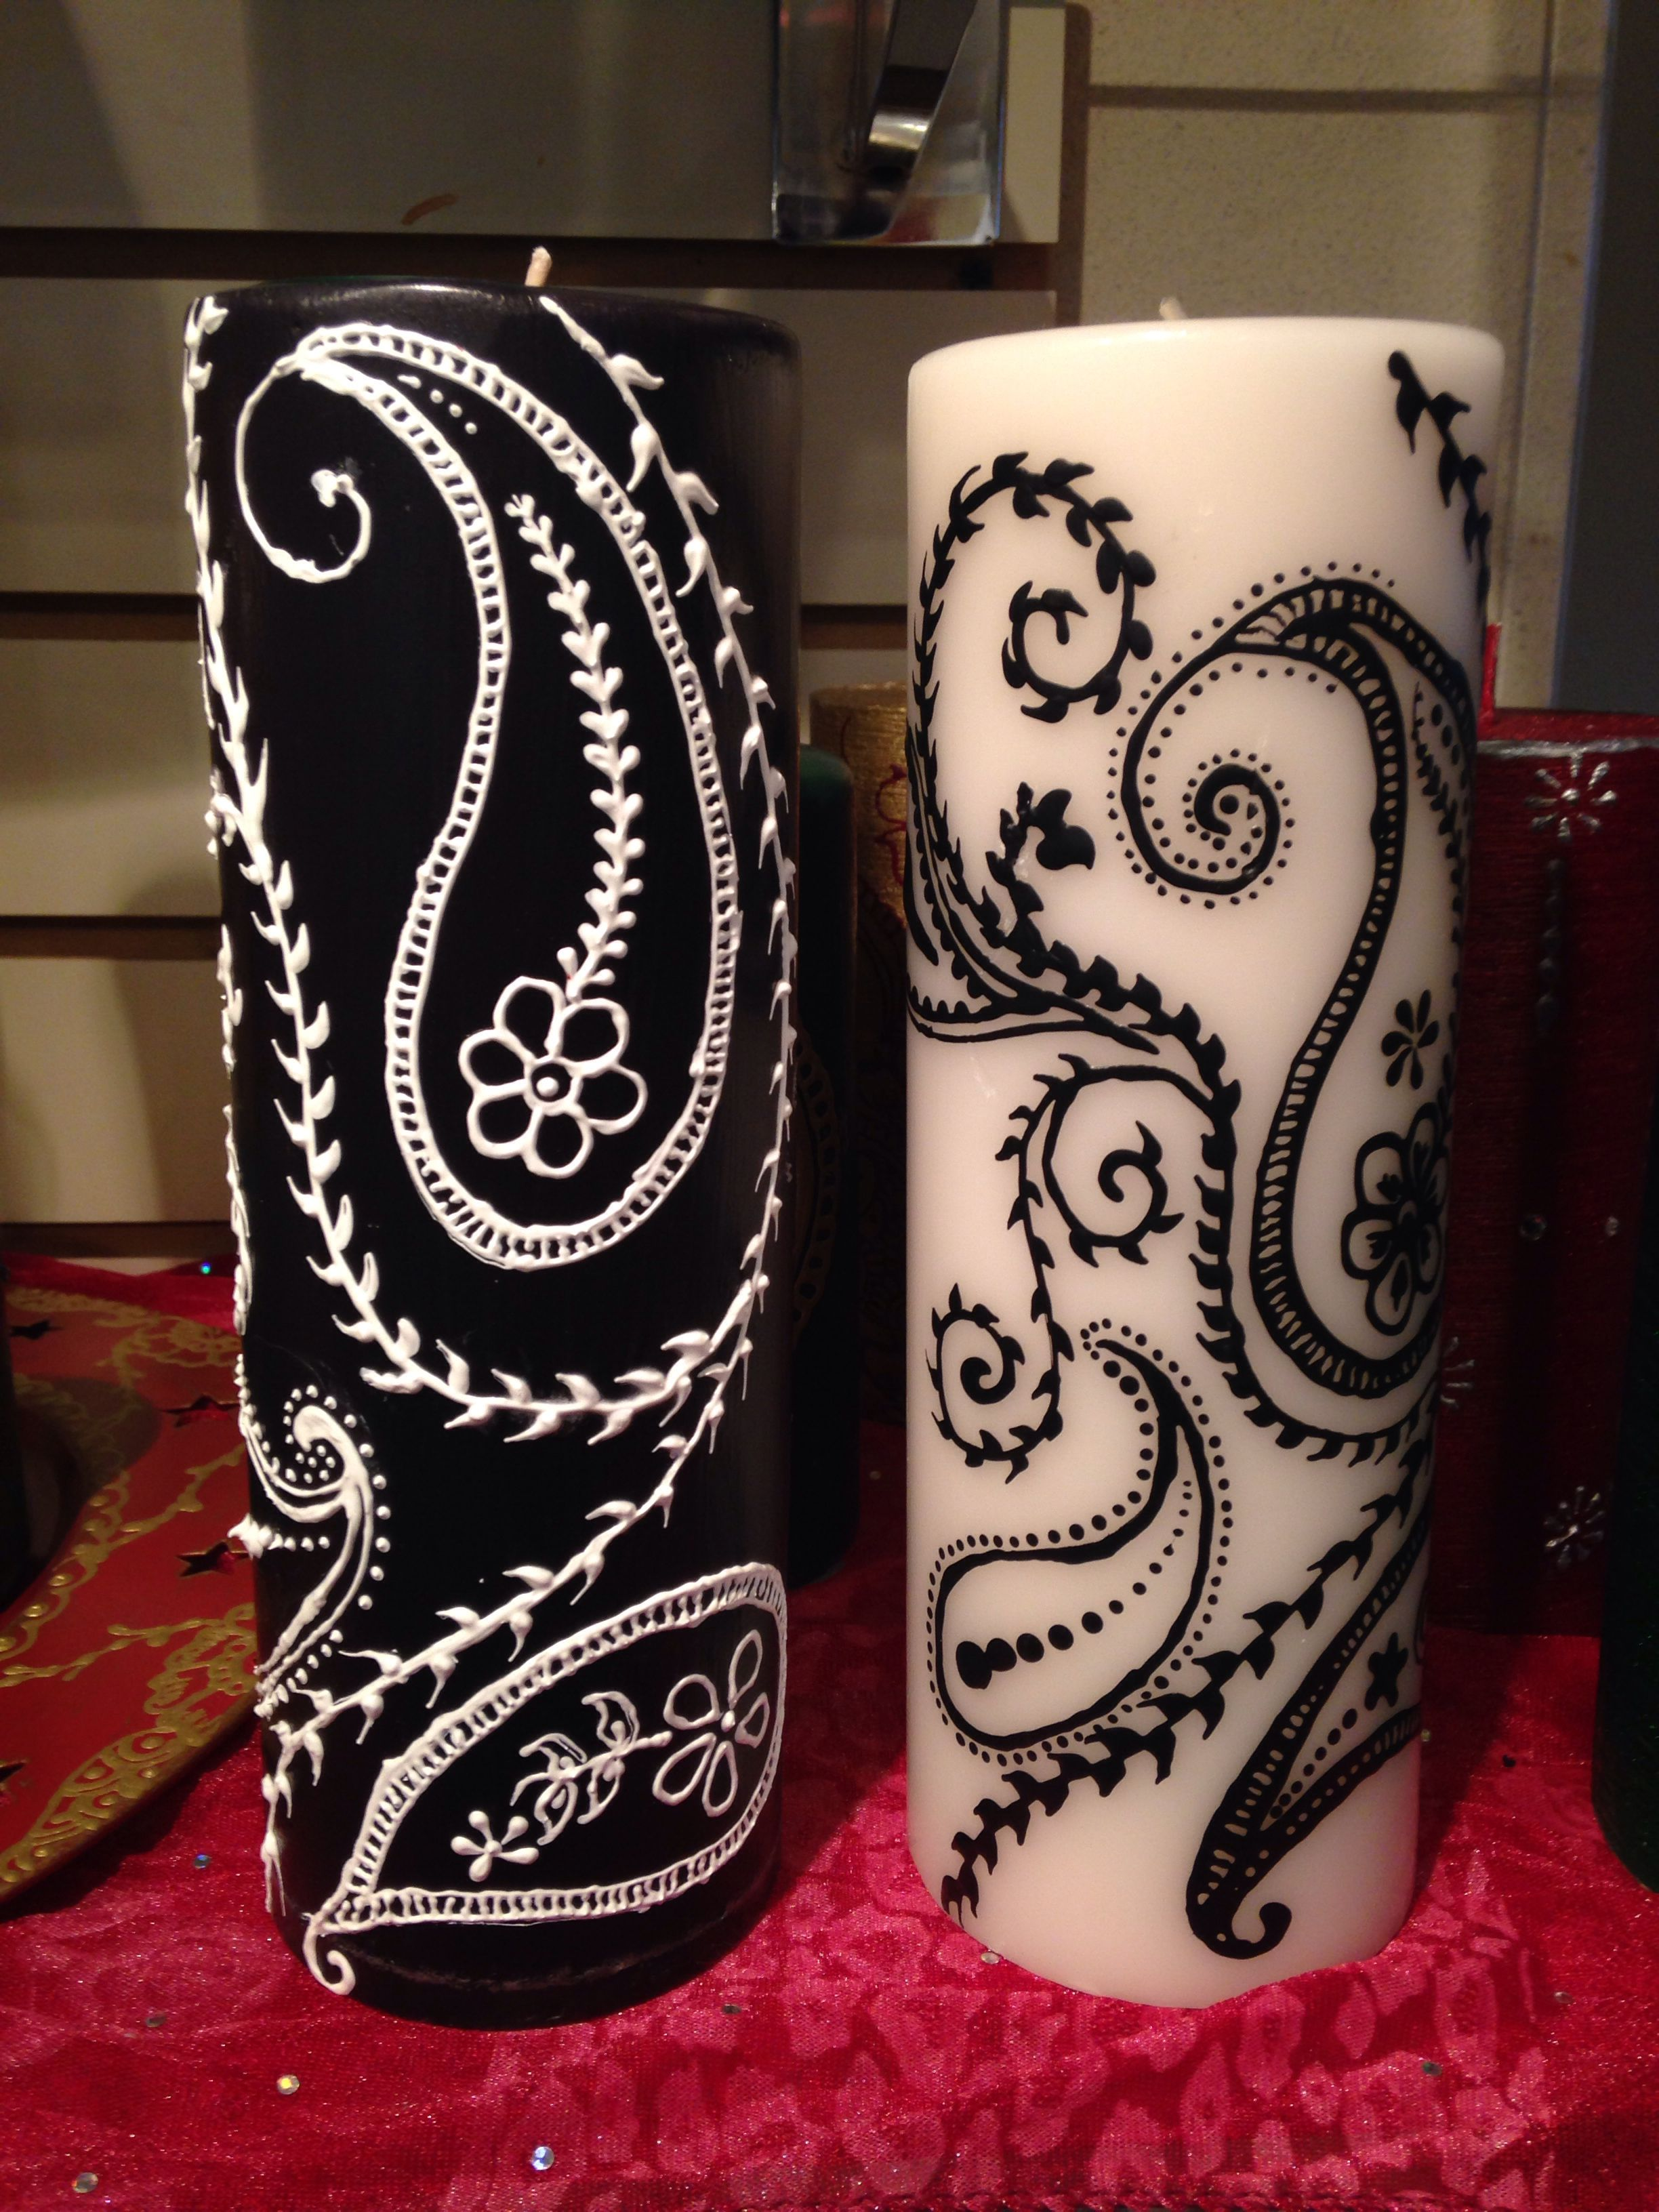 Decorative Mehndi Candles : Black and white henna art candles with intricate designs